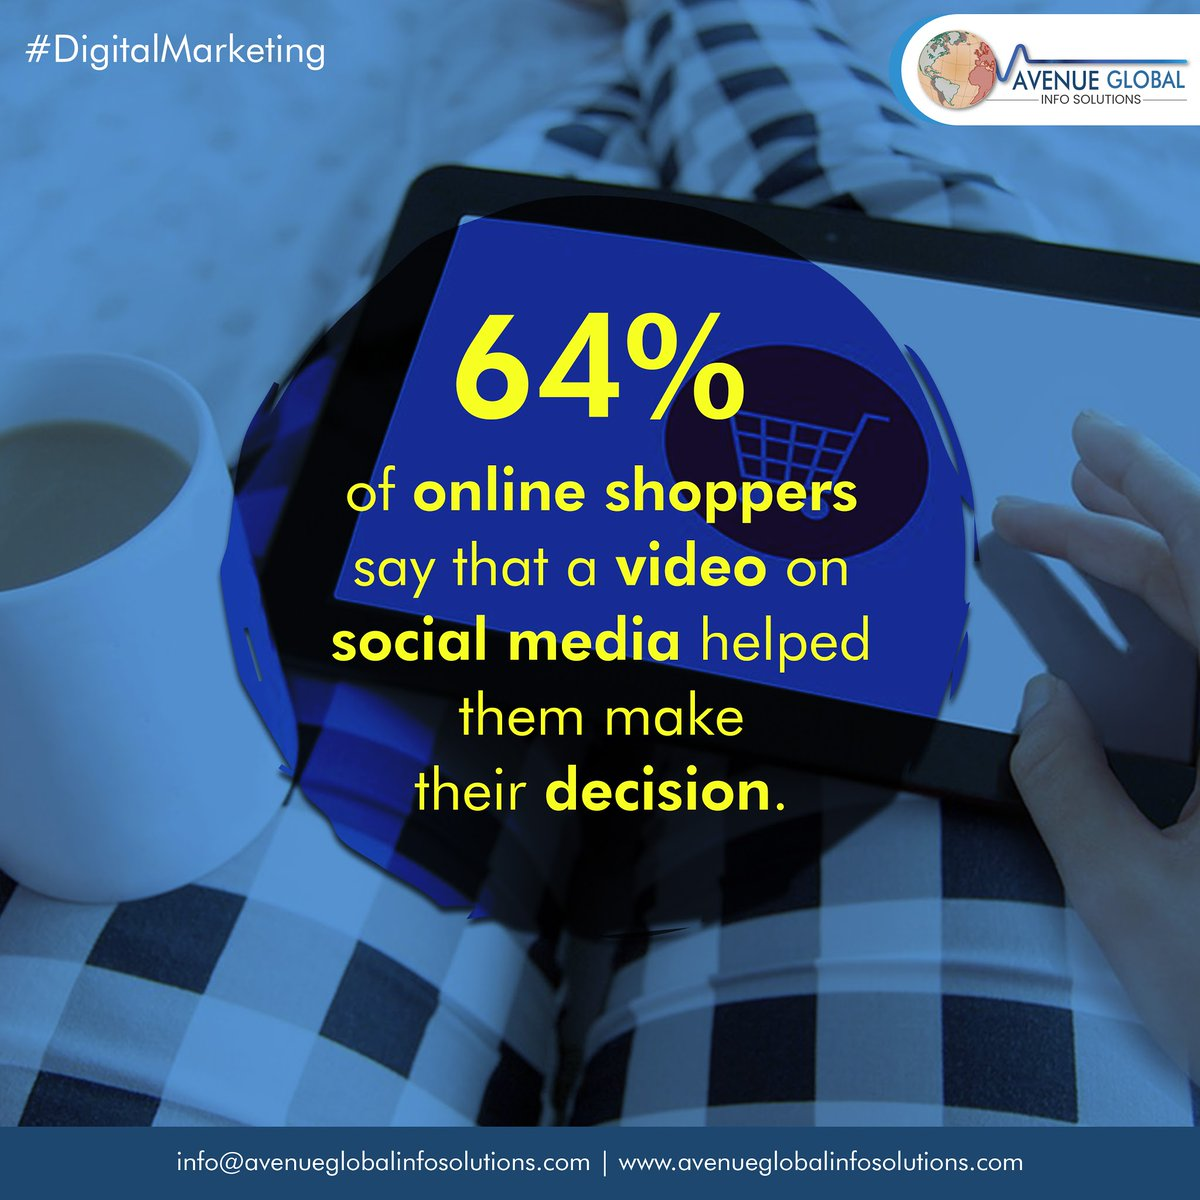 64% of online shoppers say that a video on Social media helped them make thier decision. #video #onlineshopping #socialmedia #smm #seo #content #artificialintelligence #software #technologyrocks #technologynews #technologysolutions #technology  #technomusic #DigitalMarketingpic.twitter.com/fBbeQykNQM